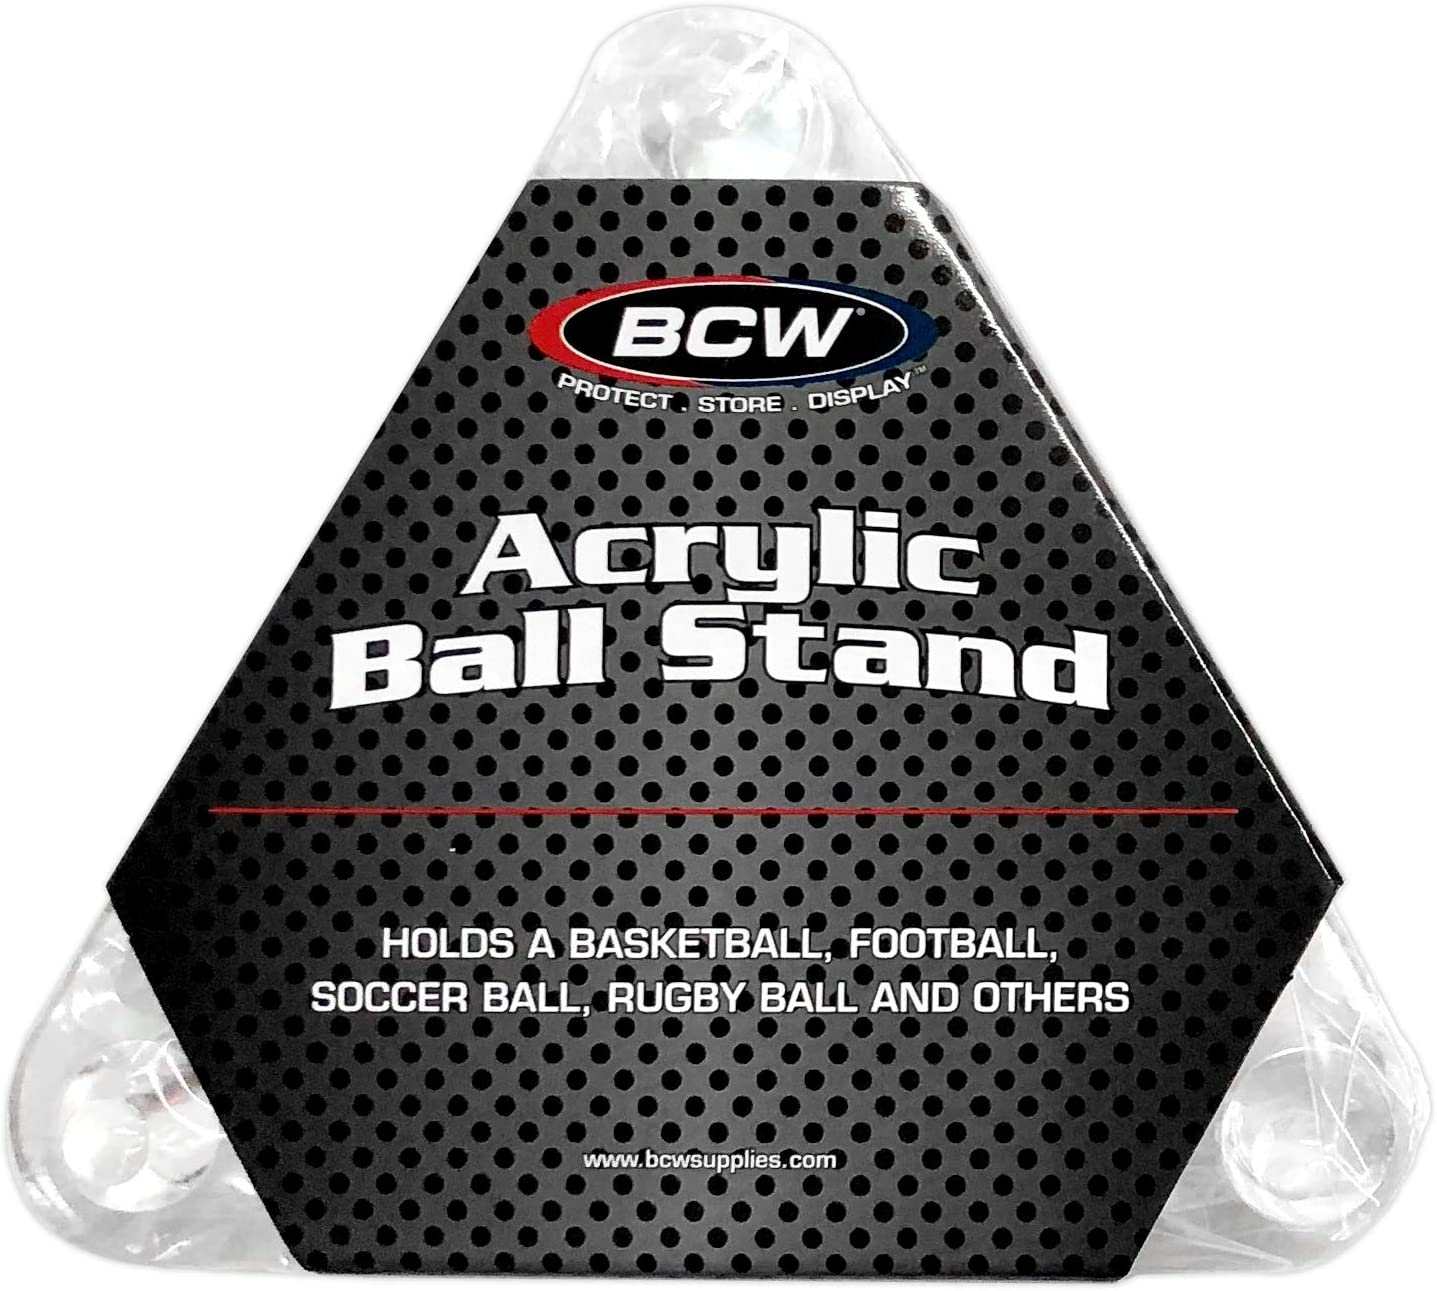 2-Pack Volleyball or Soccer Ball BCW Deluxe Acrylic Ball Stand Hold Football Display Stand or Holder Basketball